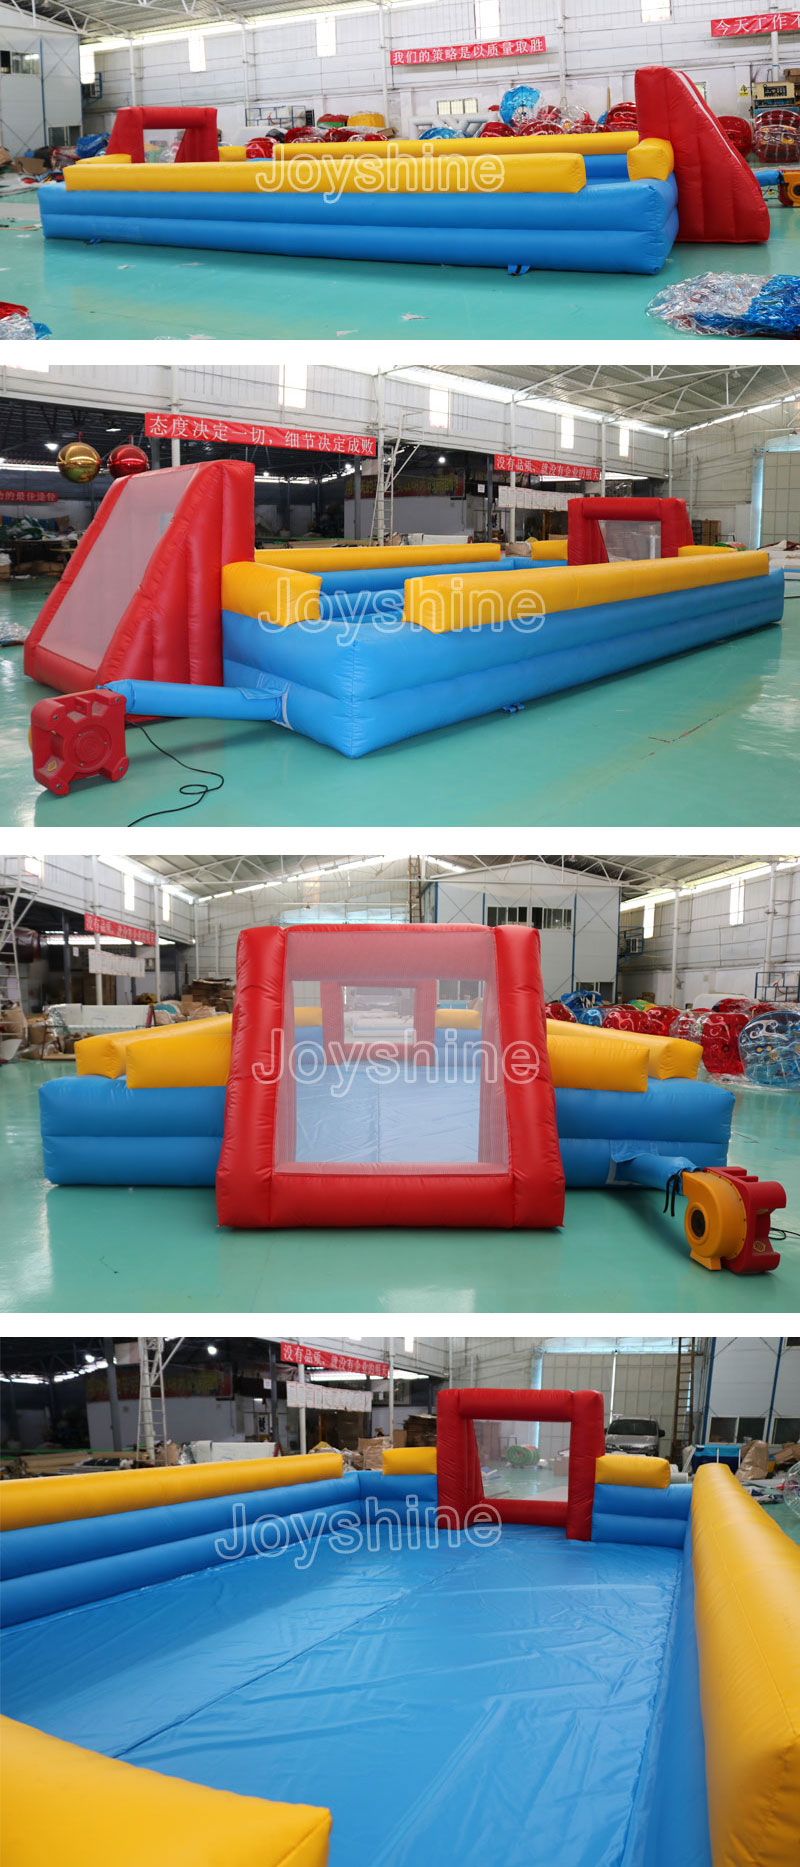 Wholesale Inflatable Soap Soccer Field Football Games Pitch Cheap Inflatable Soapy Football Arena Court For Sale